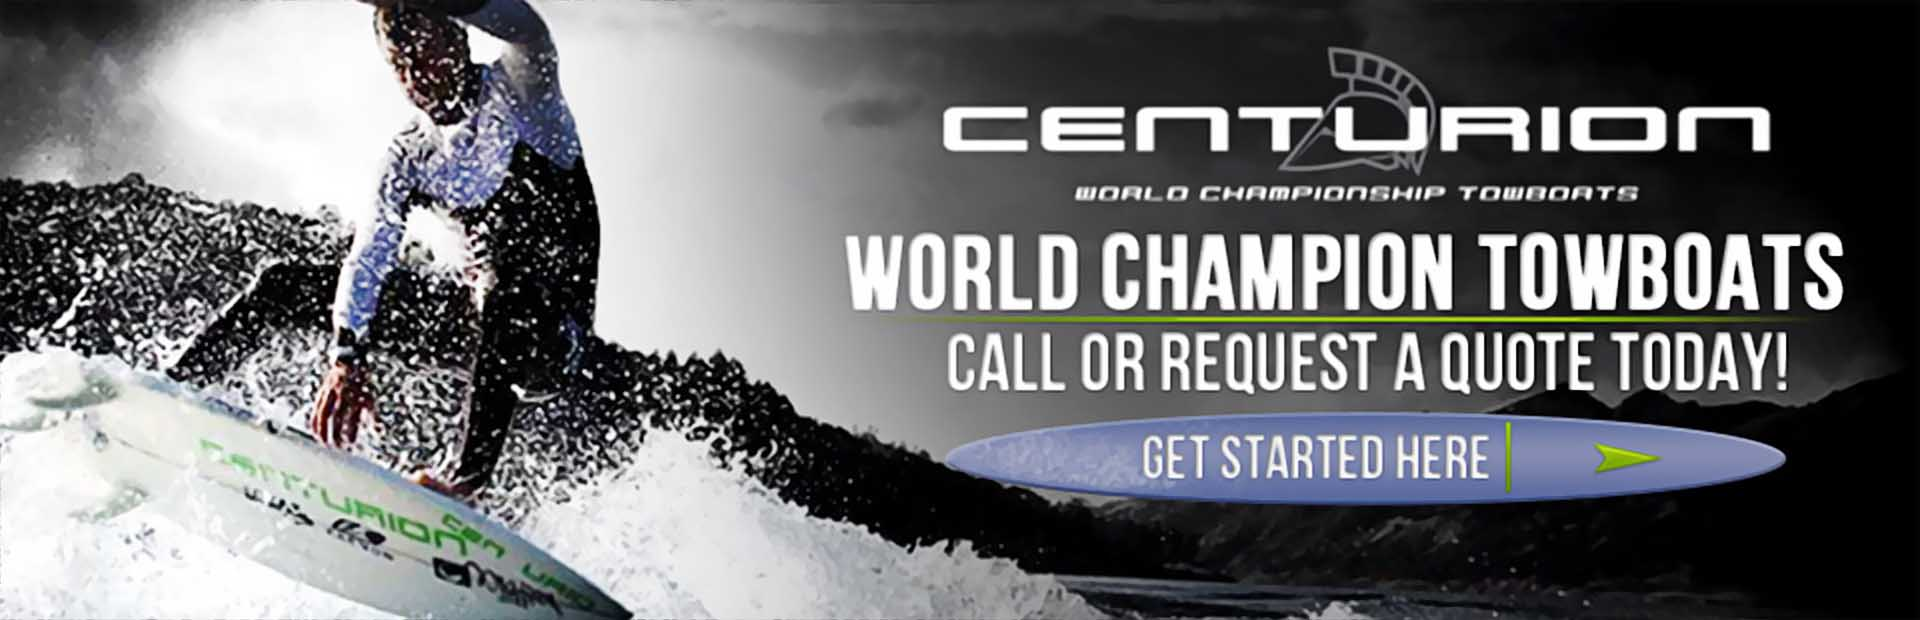 Click here to view world champion towboats from Centurion.